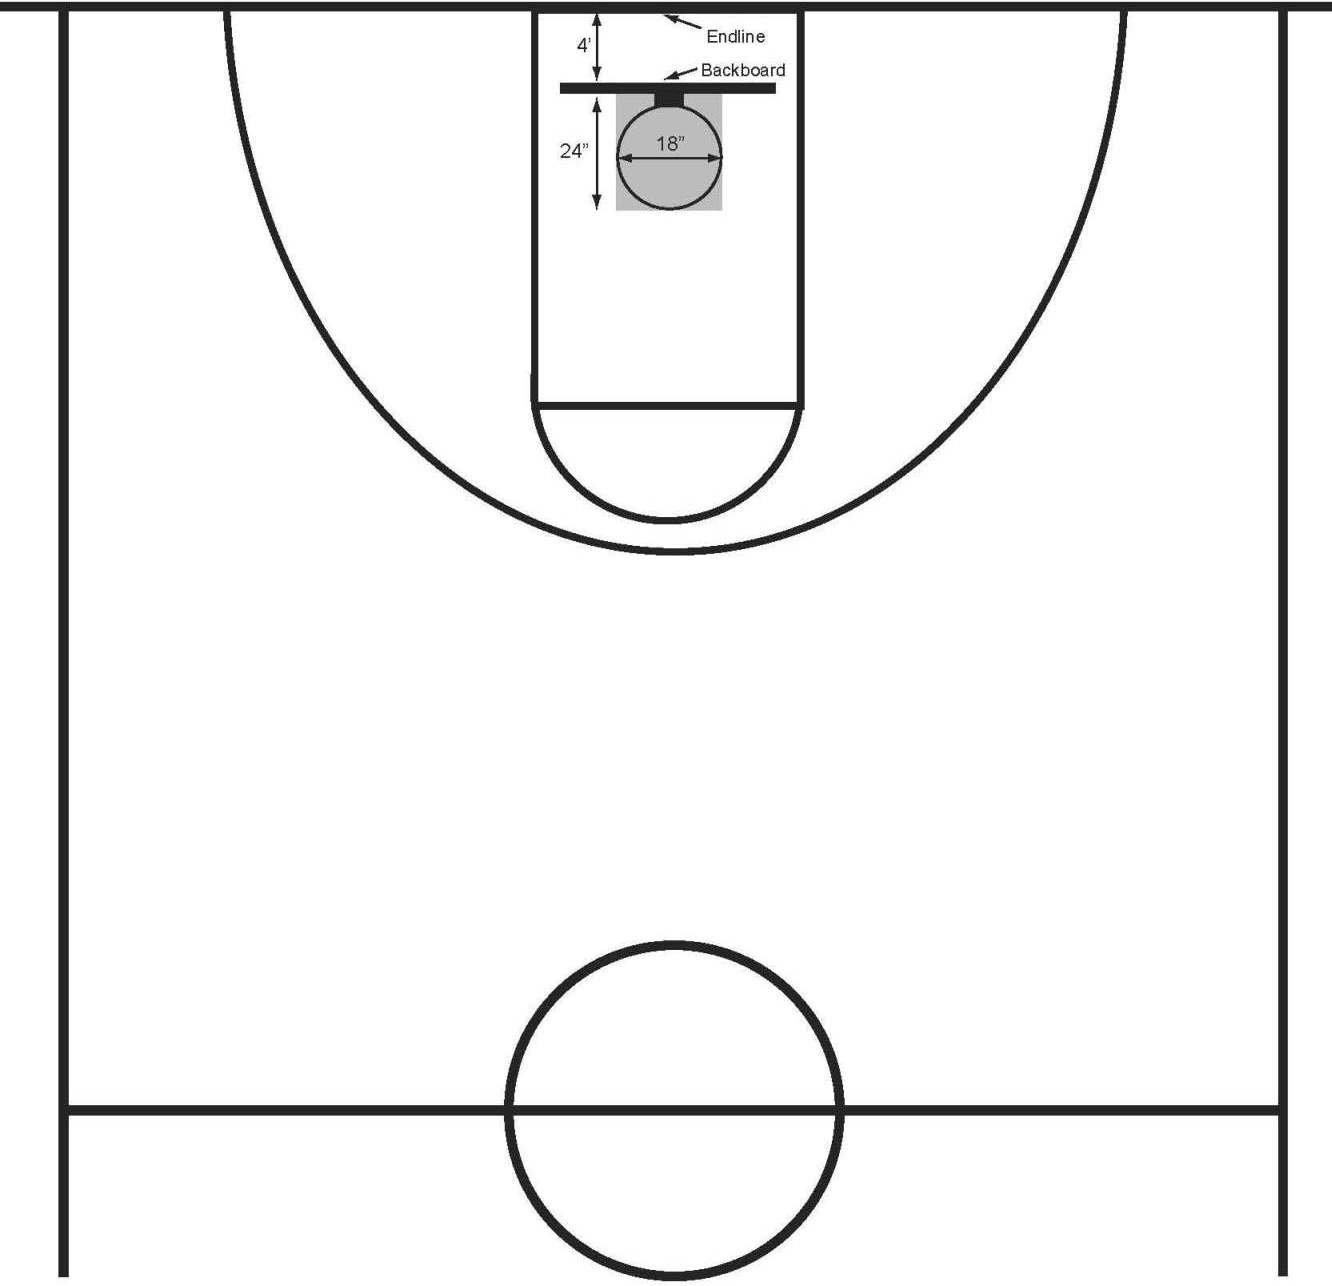 Free Printable Basketball Pictures Download Free Clip Art Free Clip Art On Clipart Library